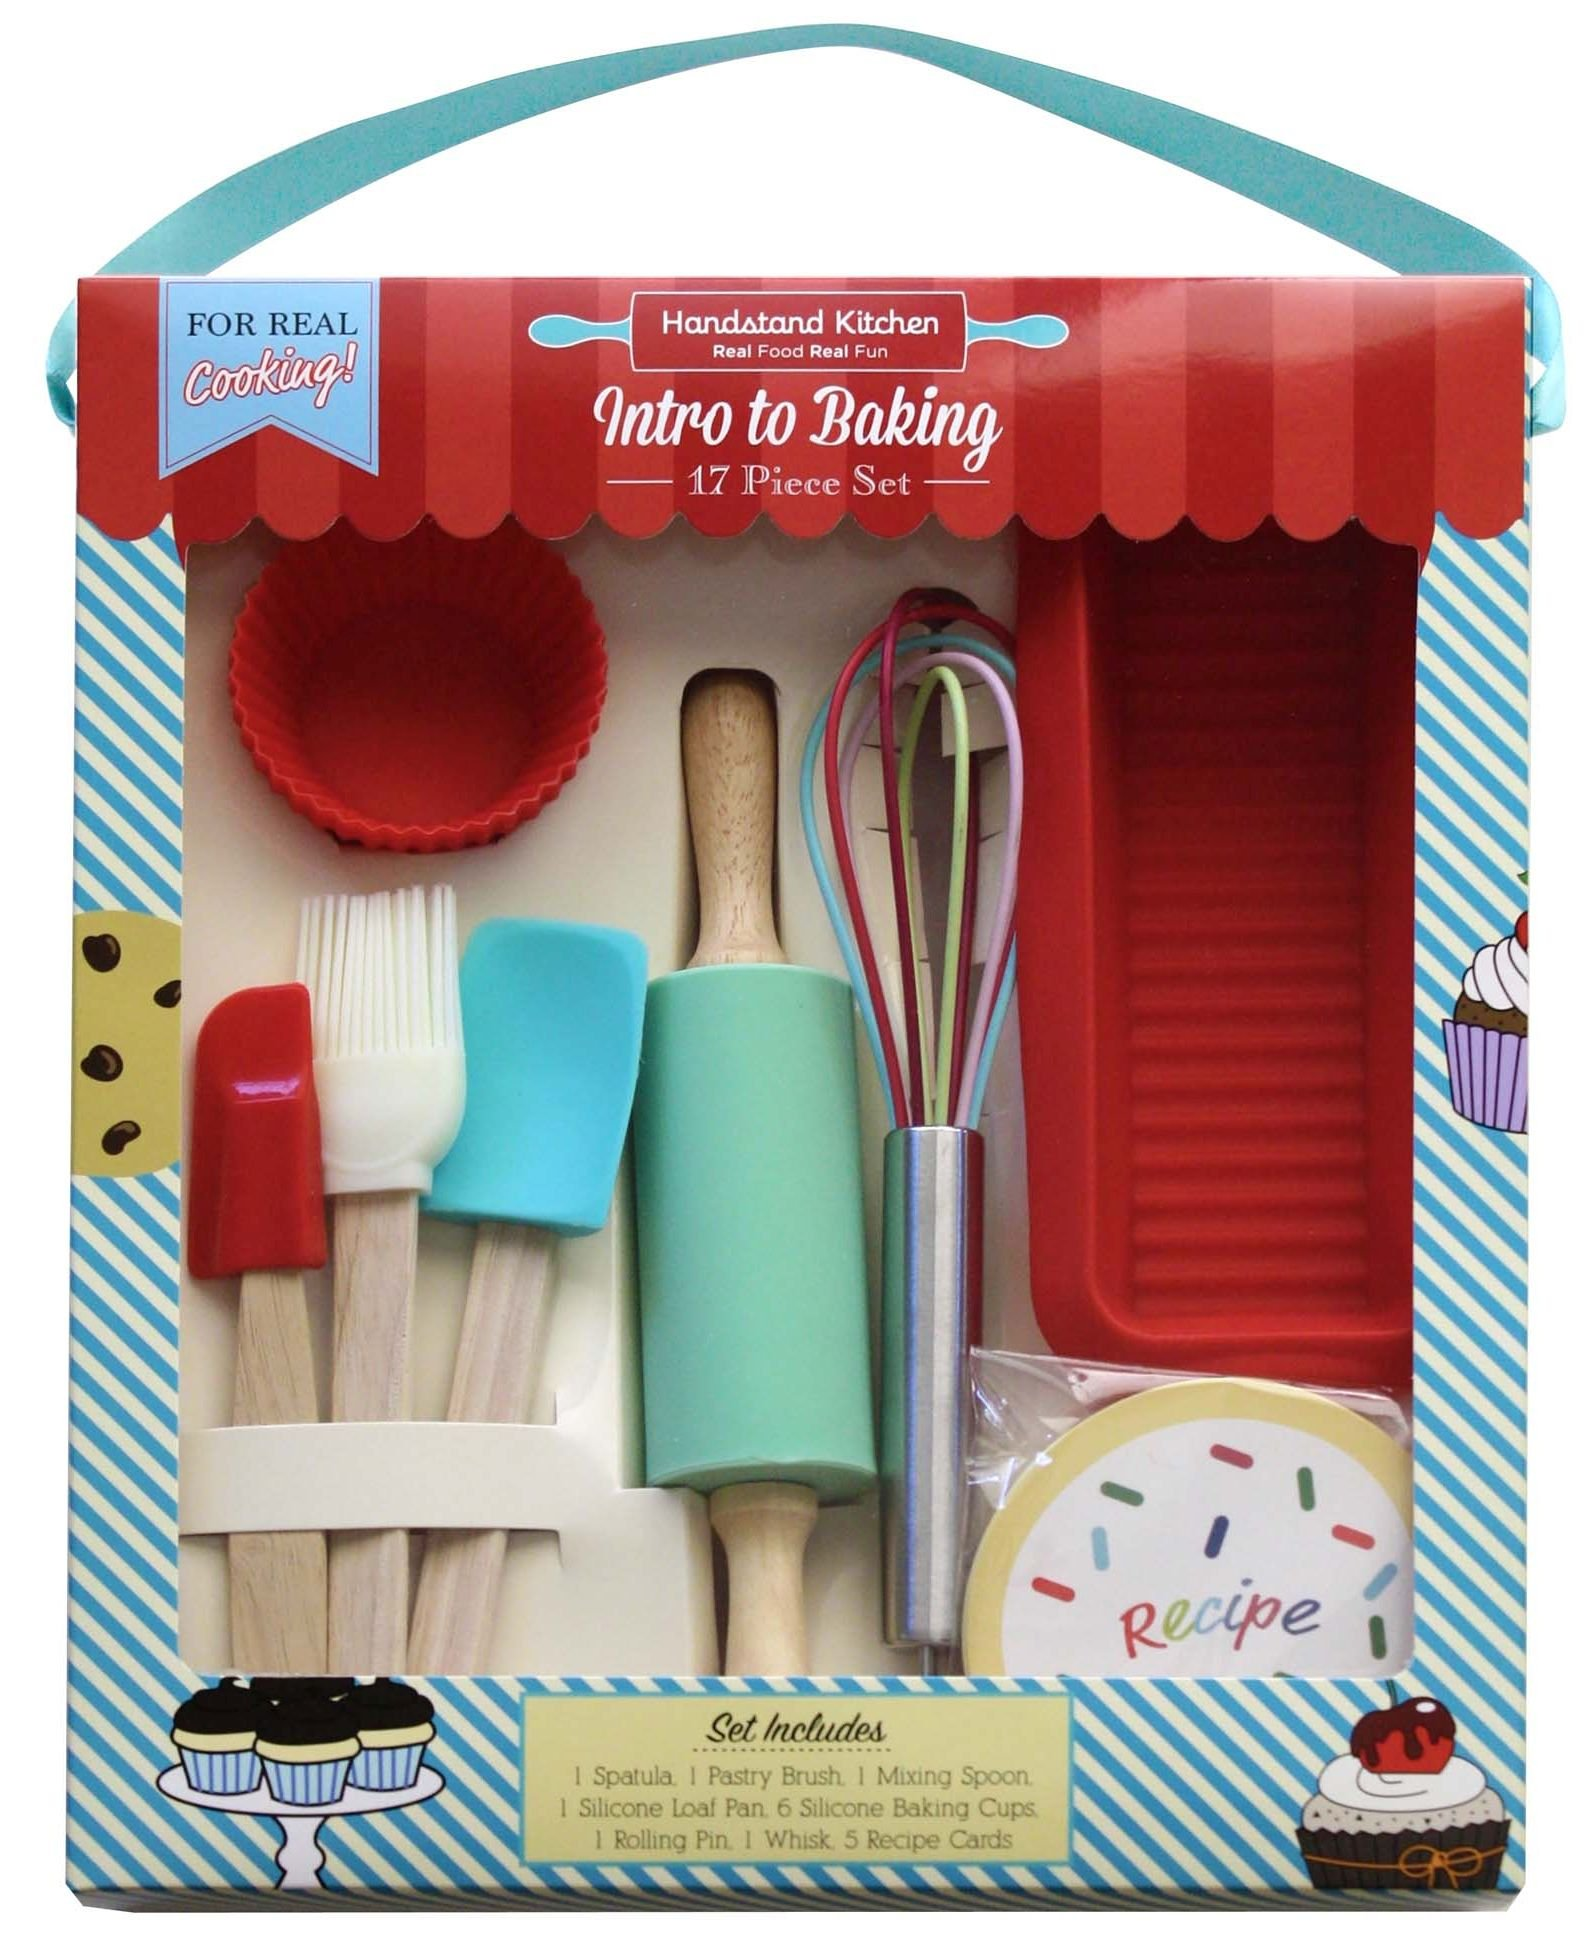 Handstand Kitchen 17-piece Introduction to Real Baking Set with Recipes for Kids by Handstand Kitchen